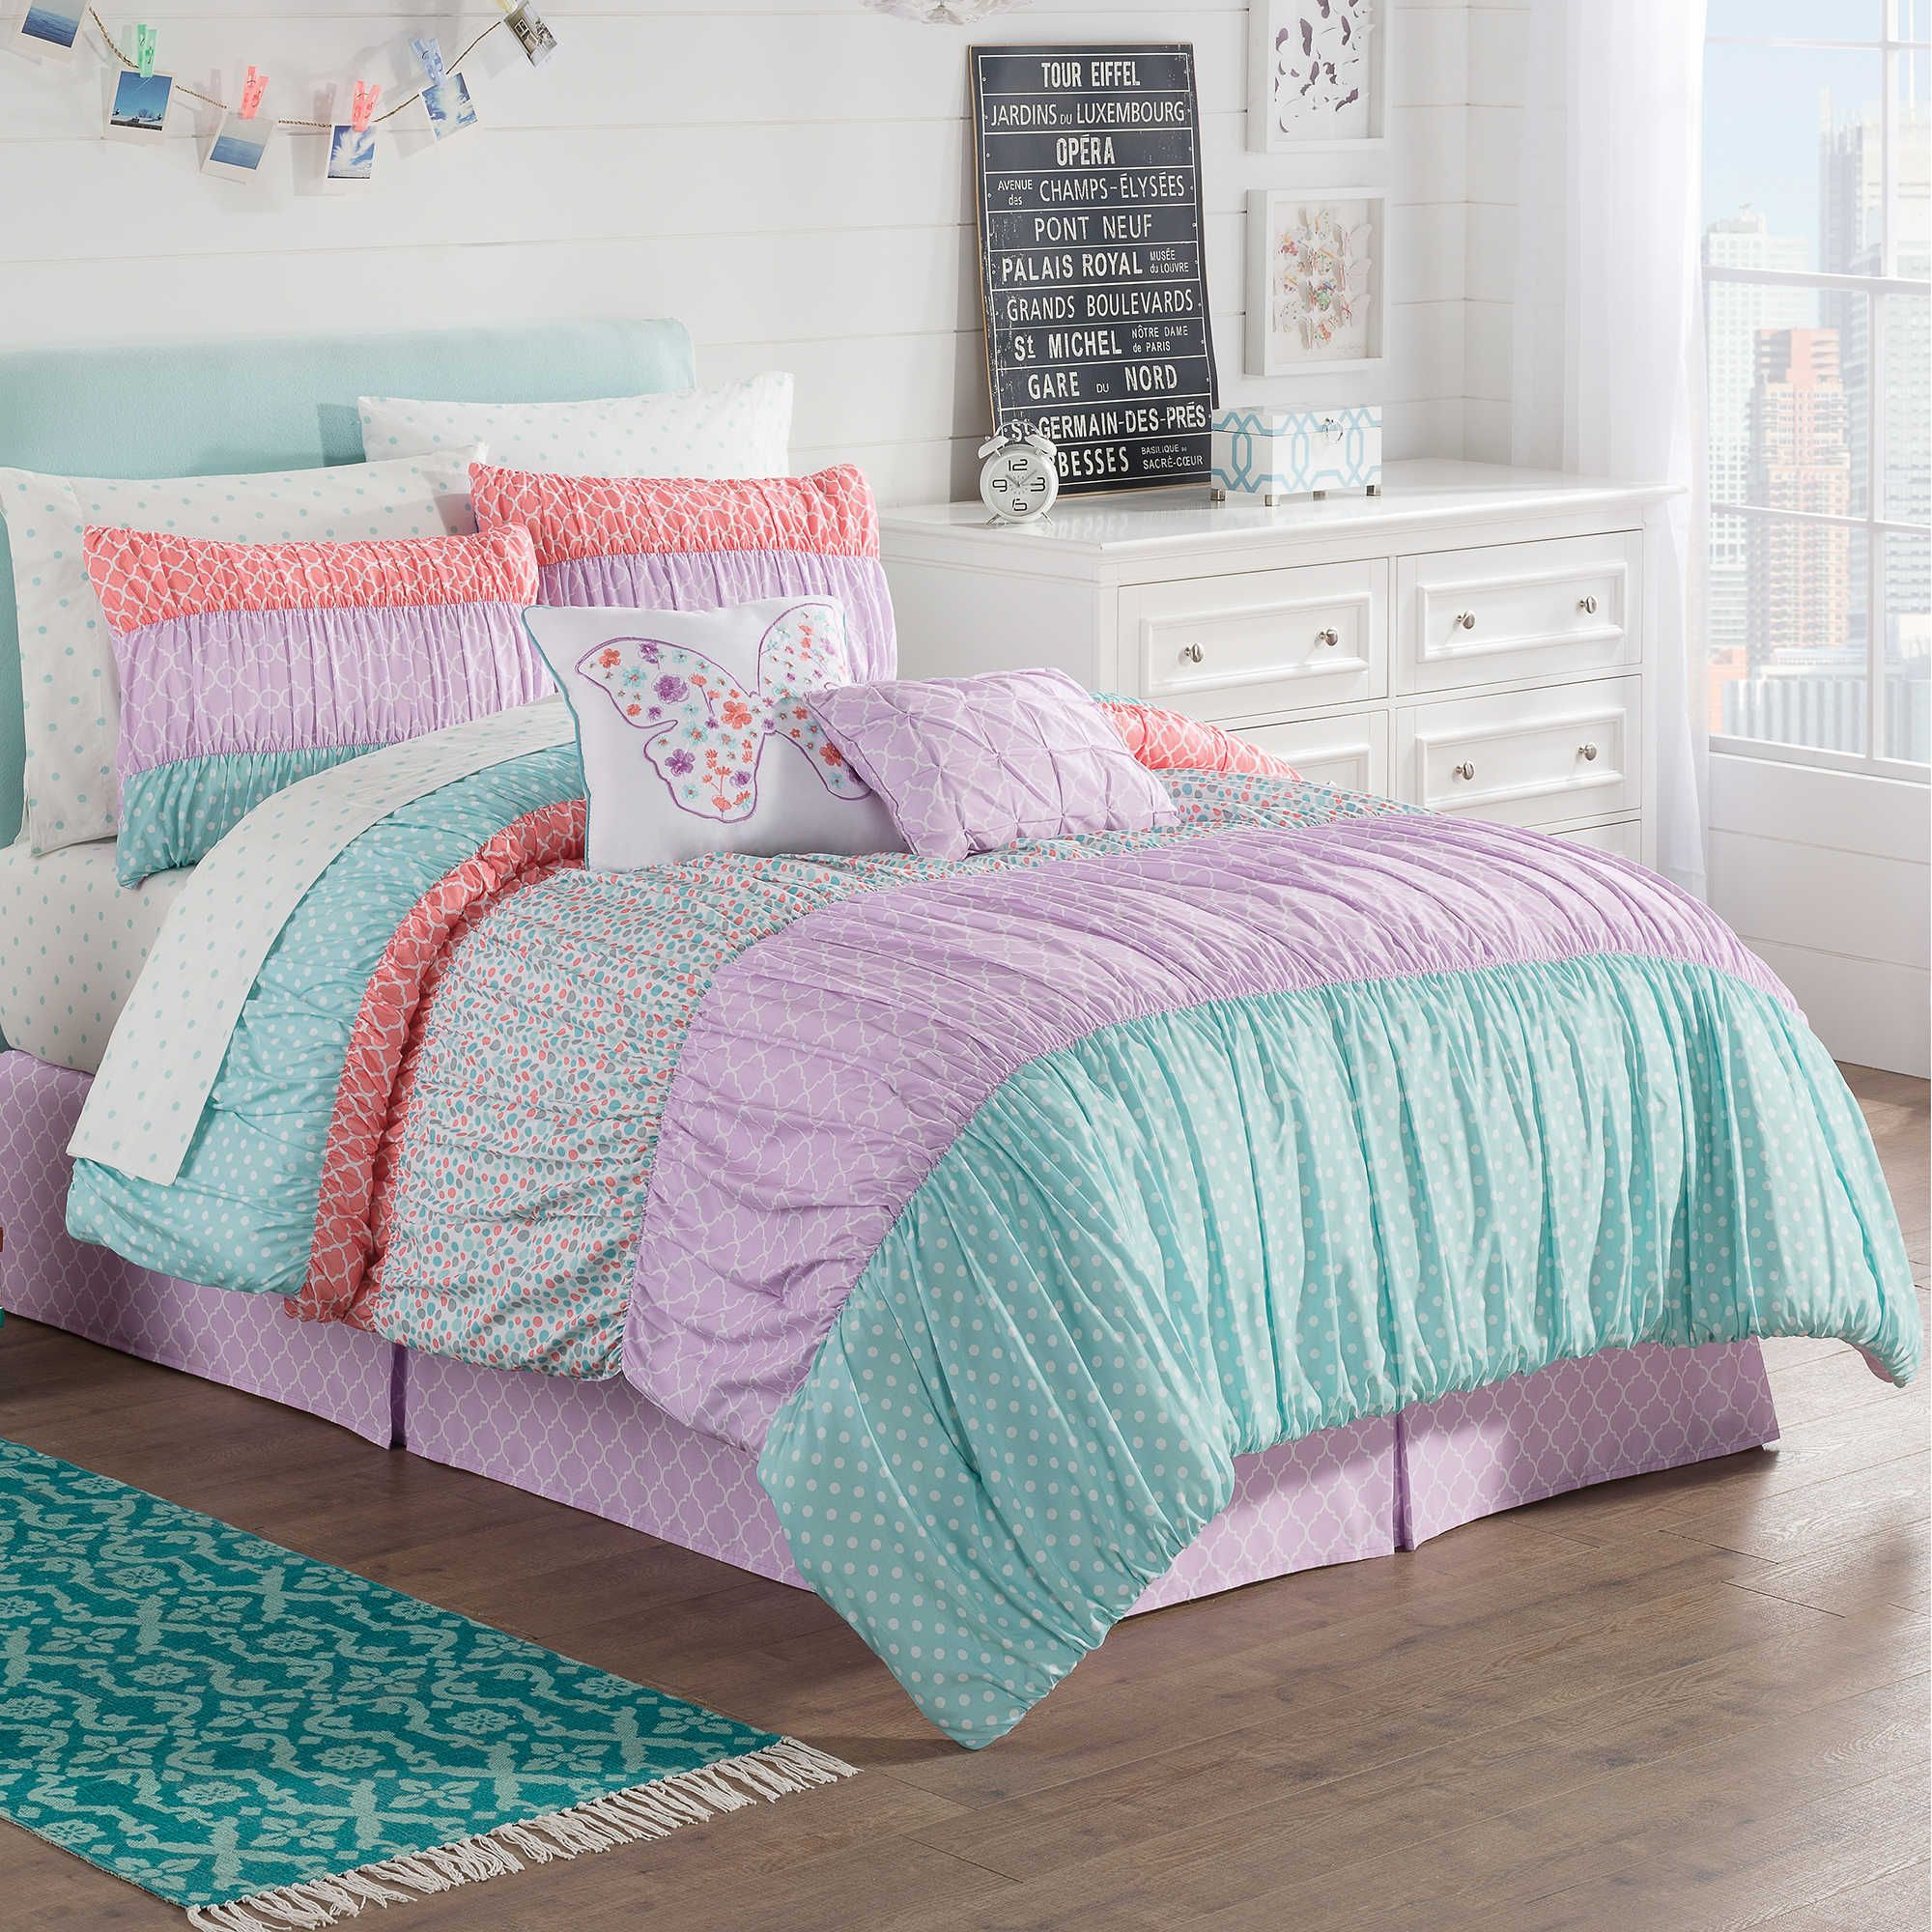 with twin bedding full size and for comforter pictures cheap ideas girls girl girlstwin kids curtainstwin of uncategorized boy clearance dreaded sets